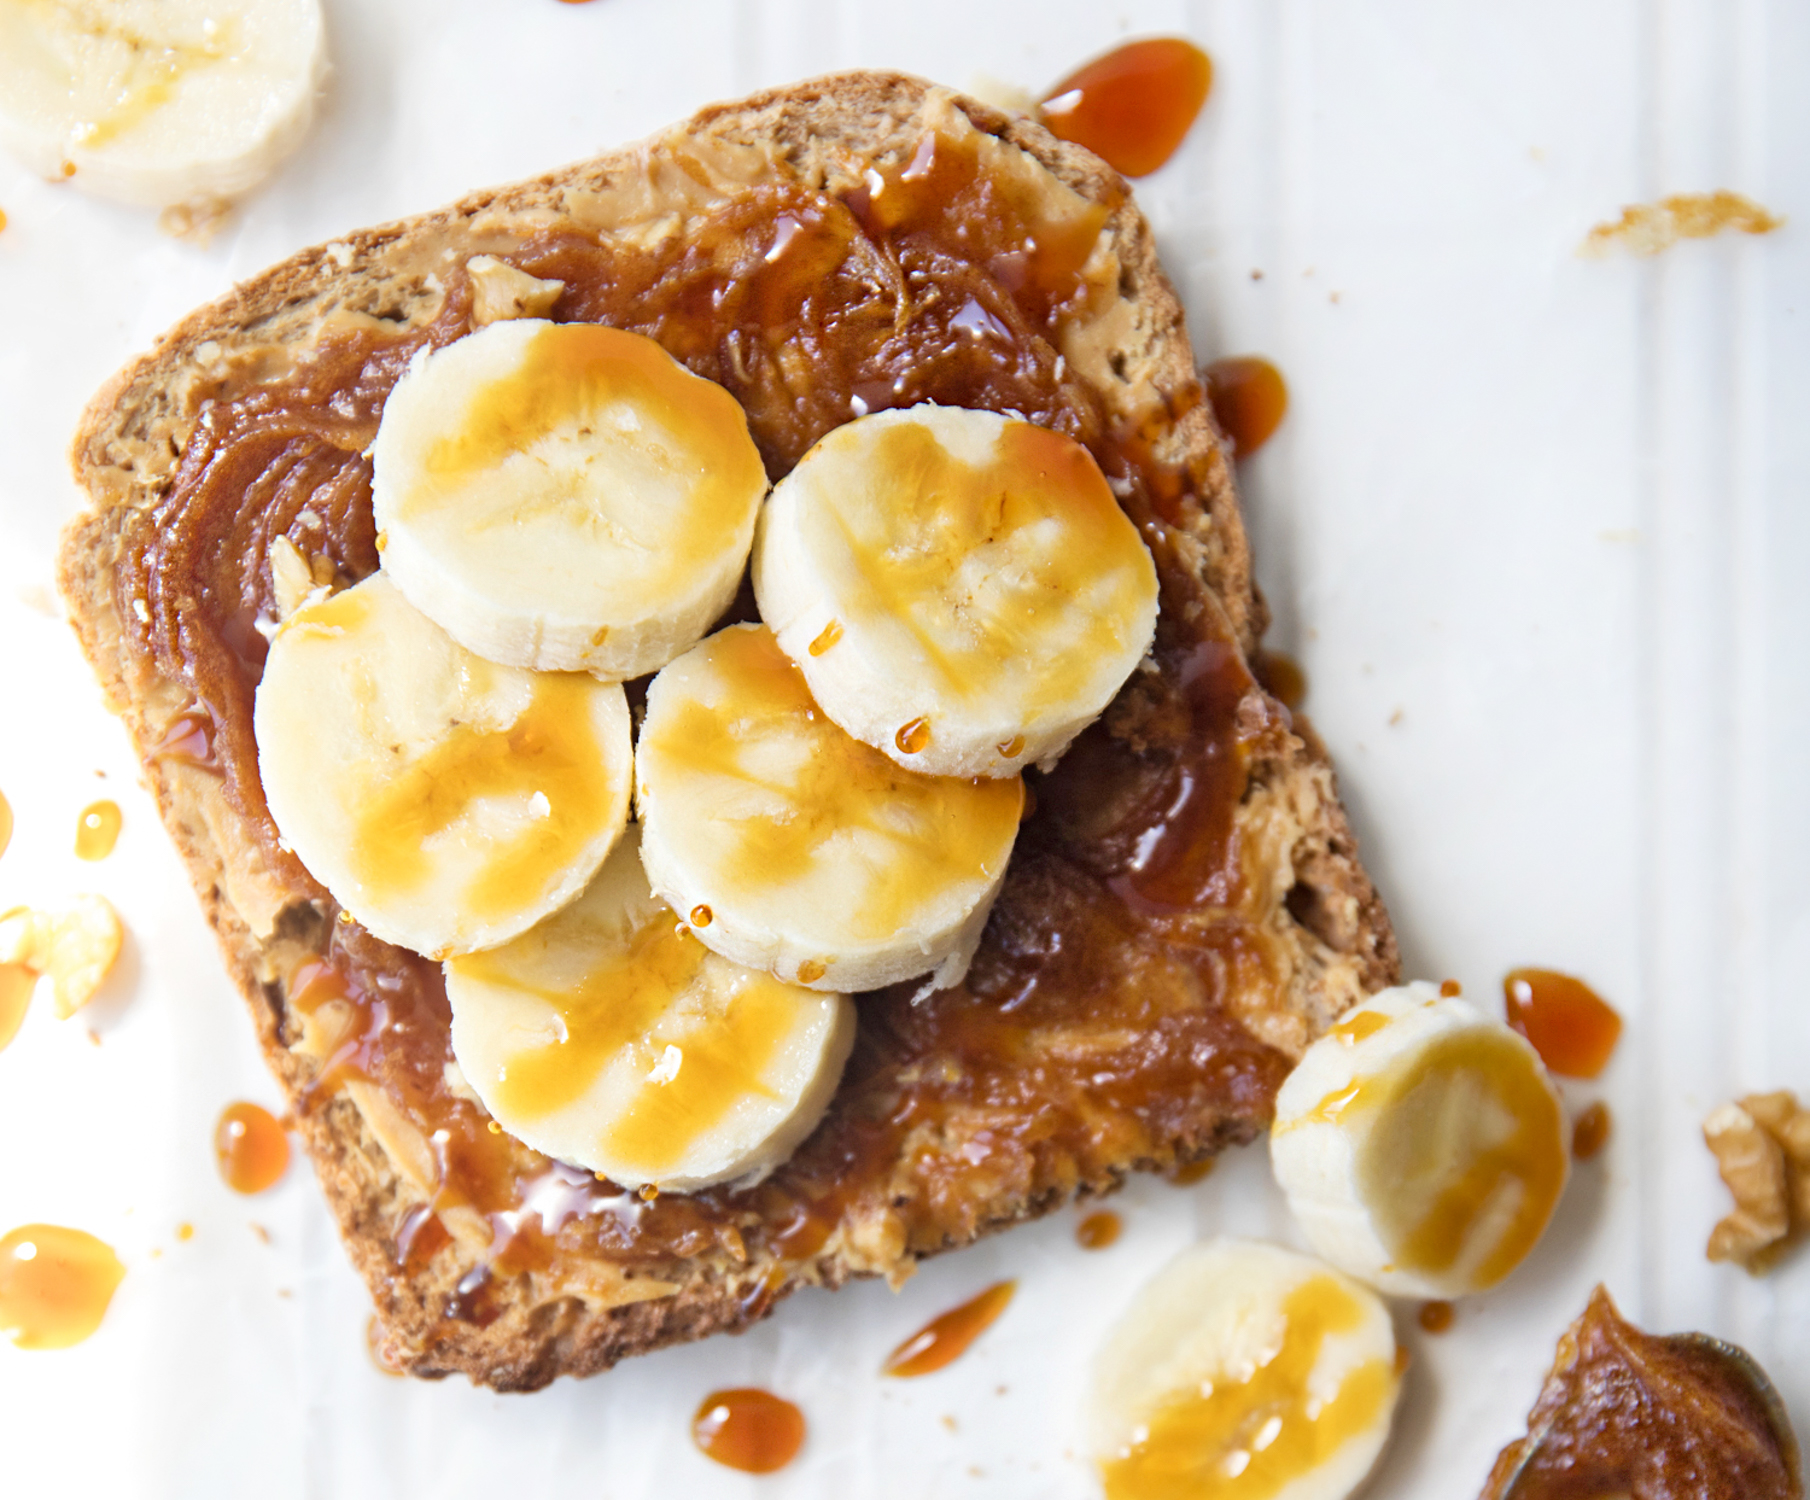 Date-Banana-Toast-Maha-Munaf-Food-Photography (8).jpg